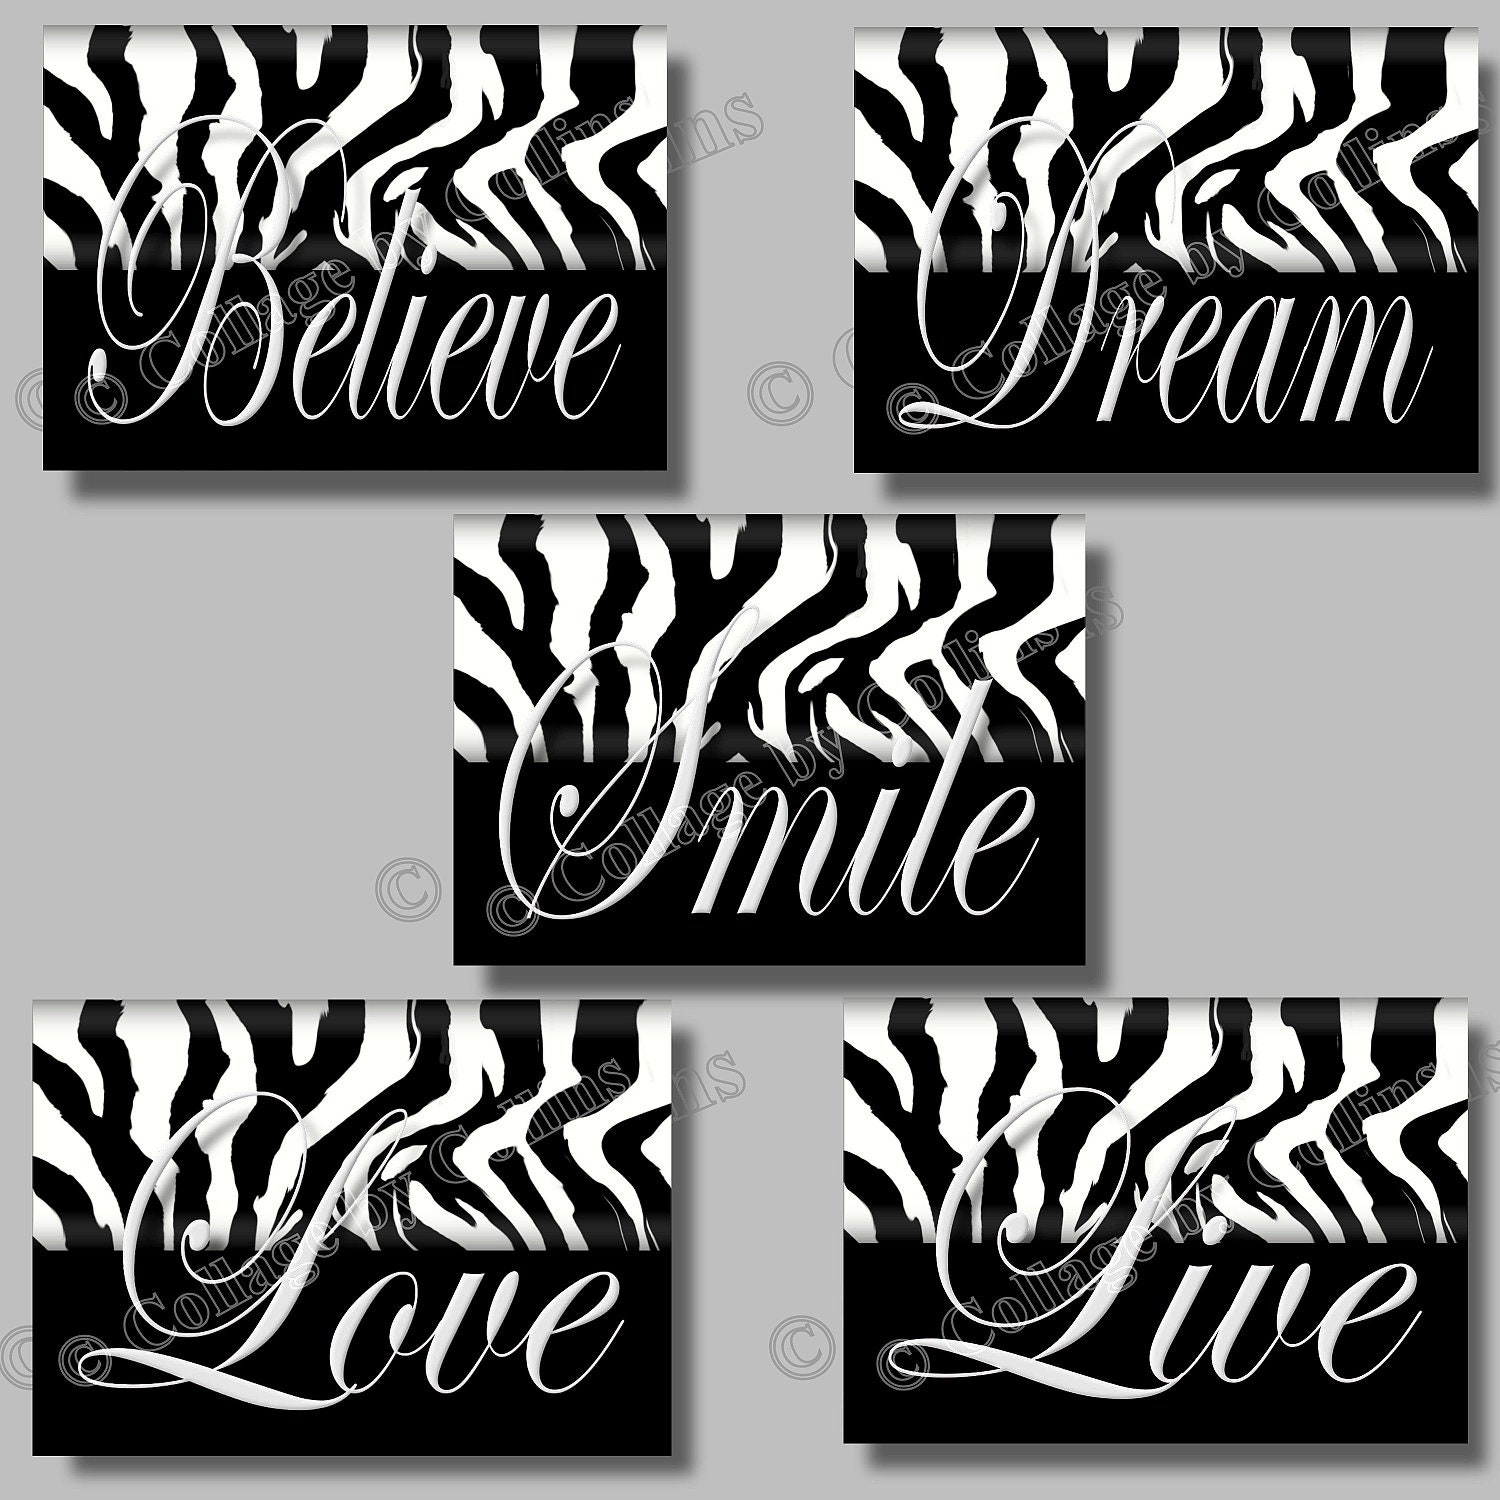 Zebra Print Inspirational Art Girls Room Wall Home Decor Black White Smile Dream Live Love Believe Quote Unframed Bedroom Pictures Photos